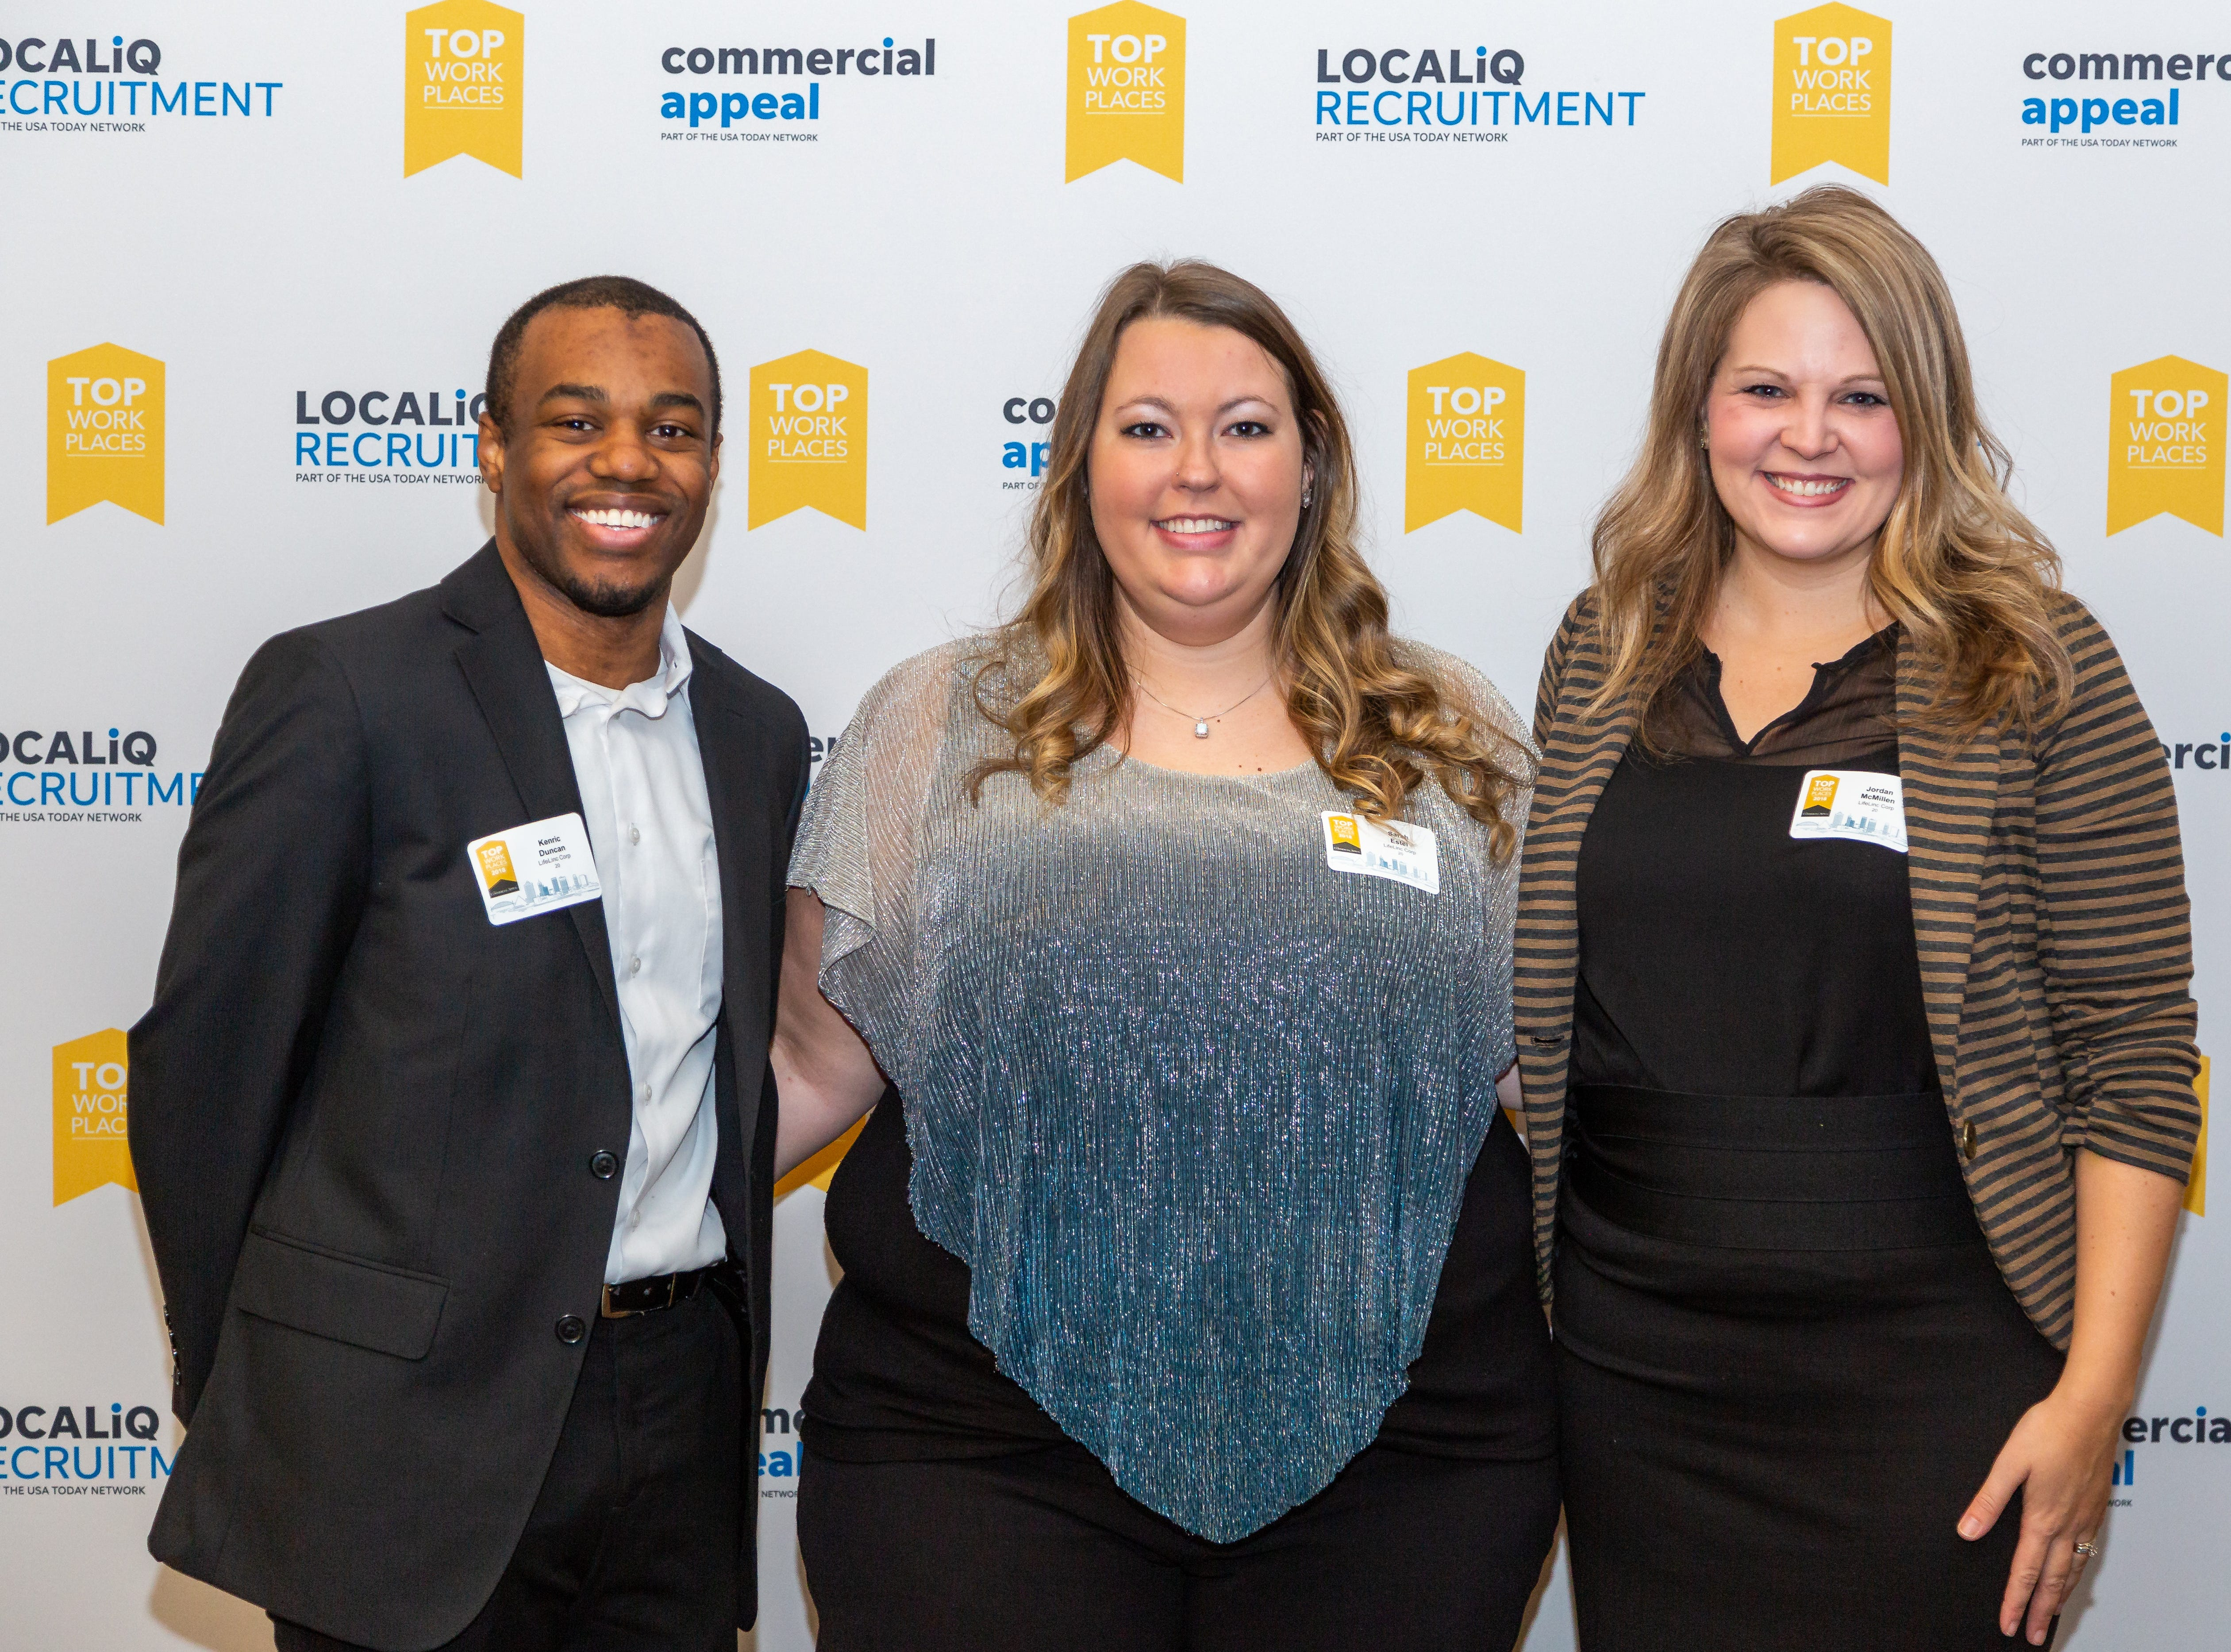 The Commercial Appeal Top Workplaces 2018 celebration breakfast.